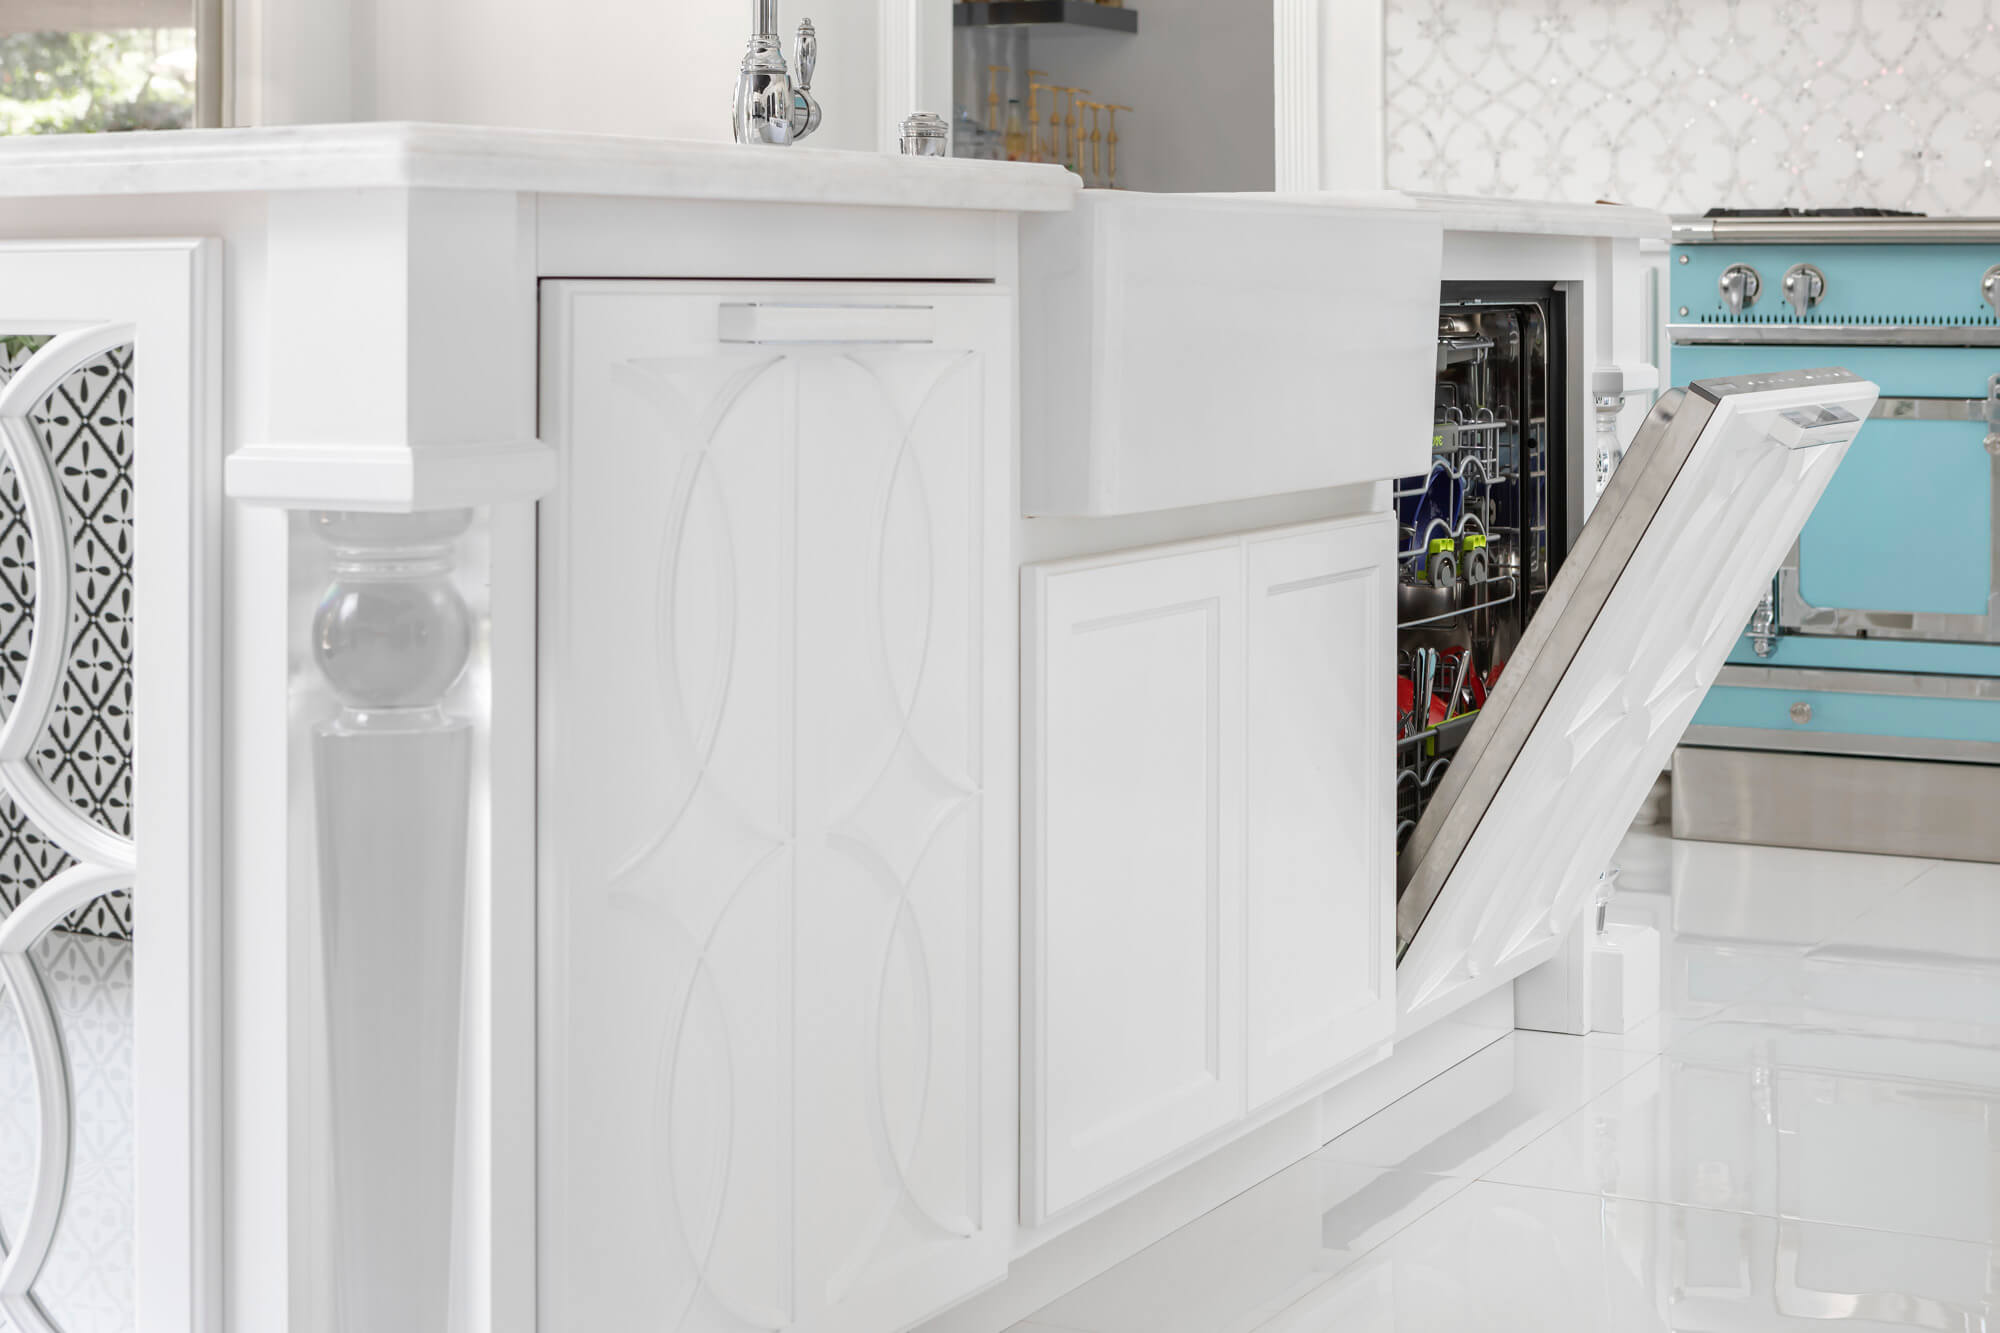 Custom cabinets using luxury design to disguise dishwasher.